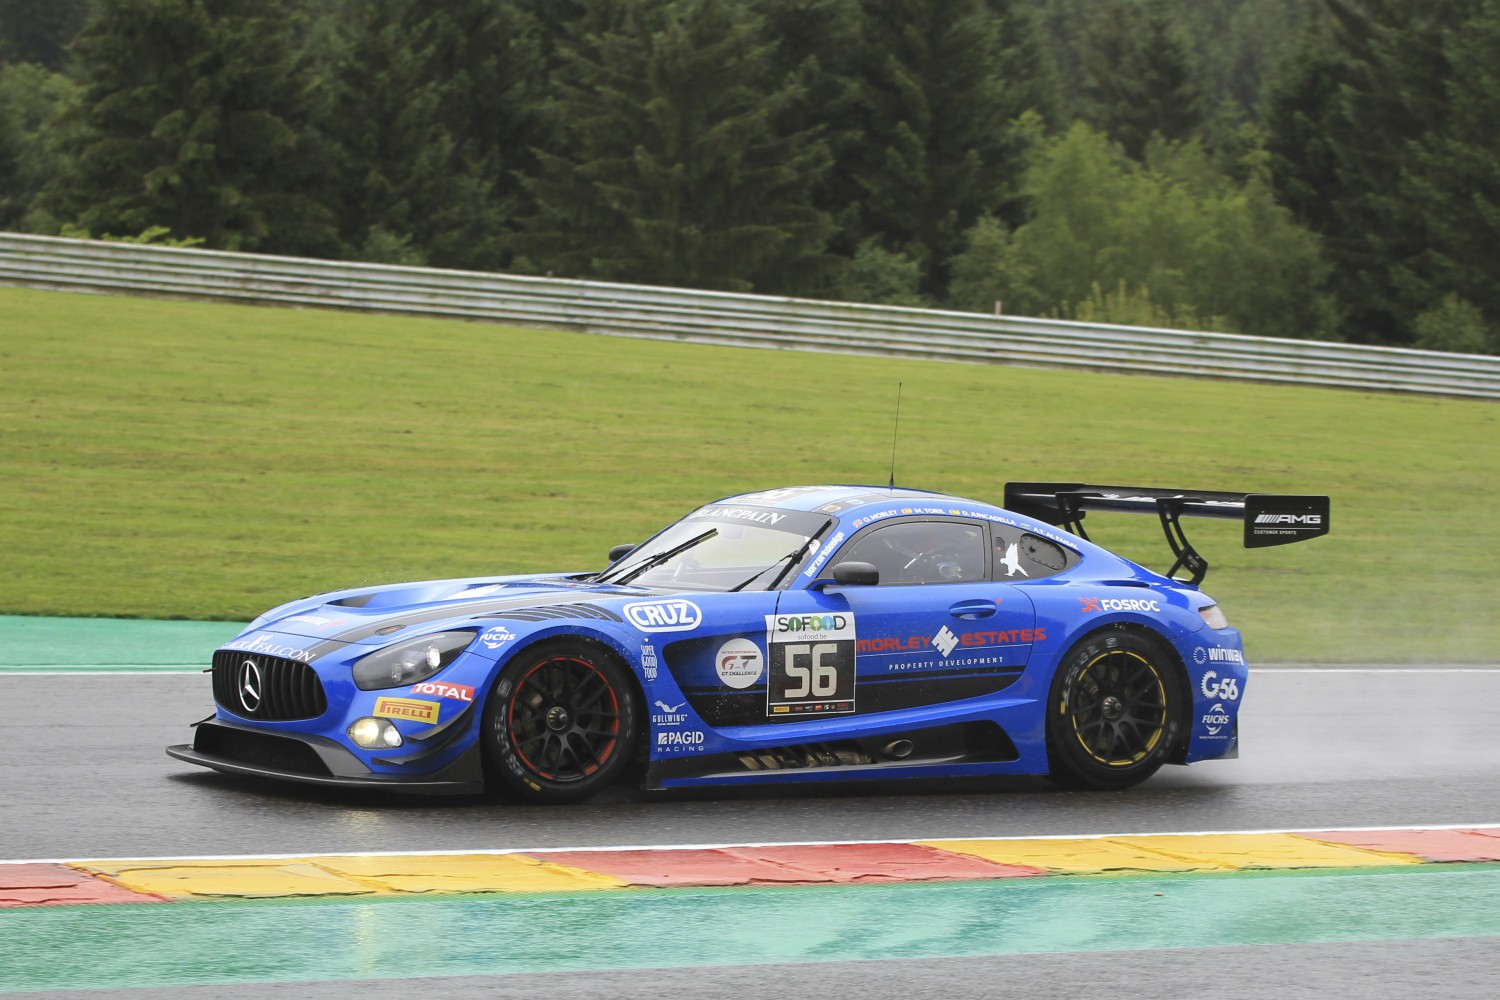 Intercontinental GT Challenge popular with Bronze drivers as well